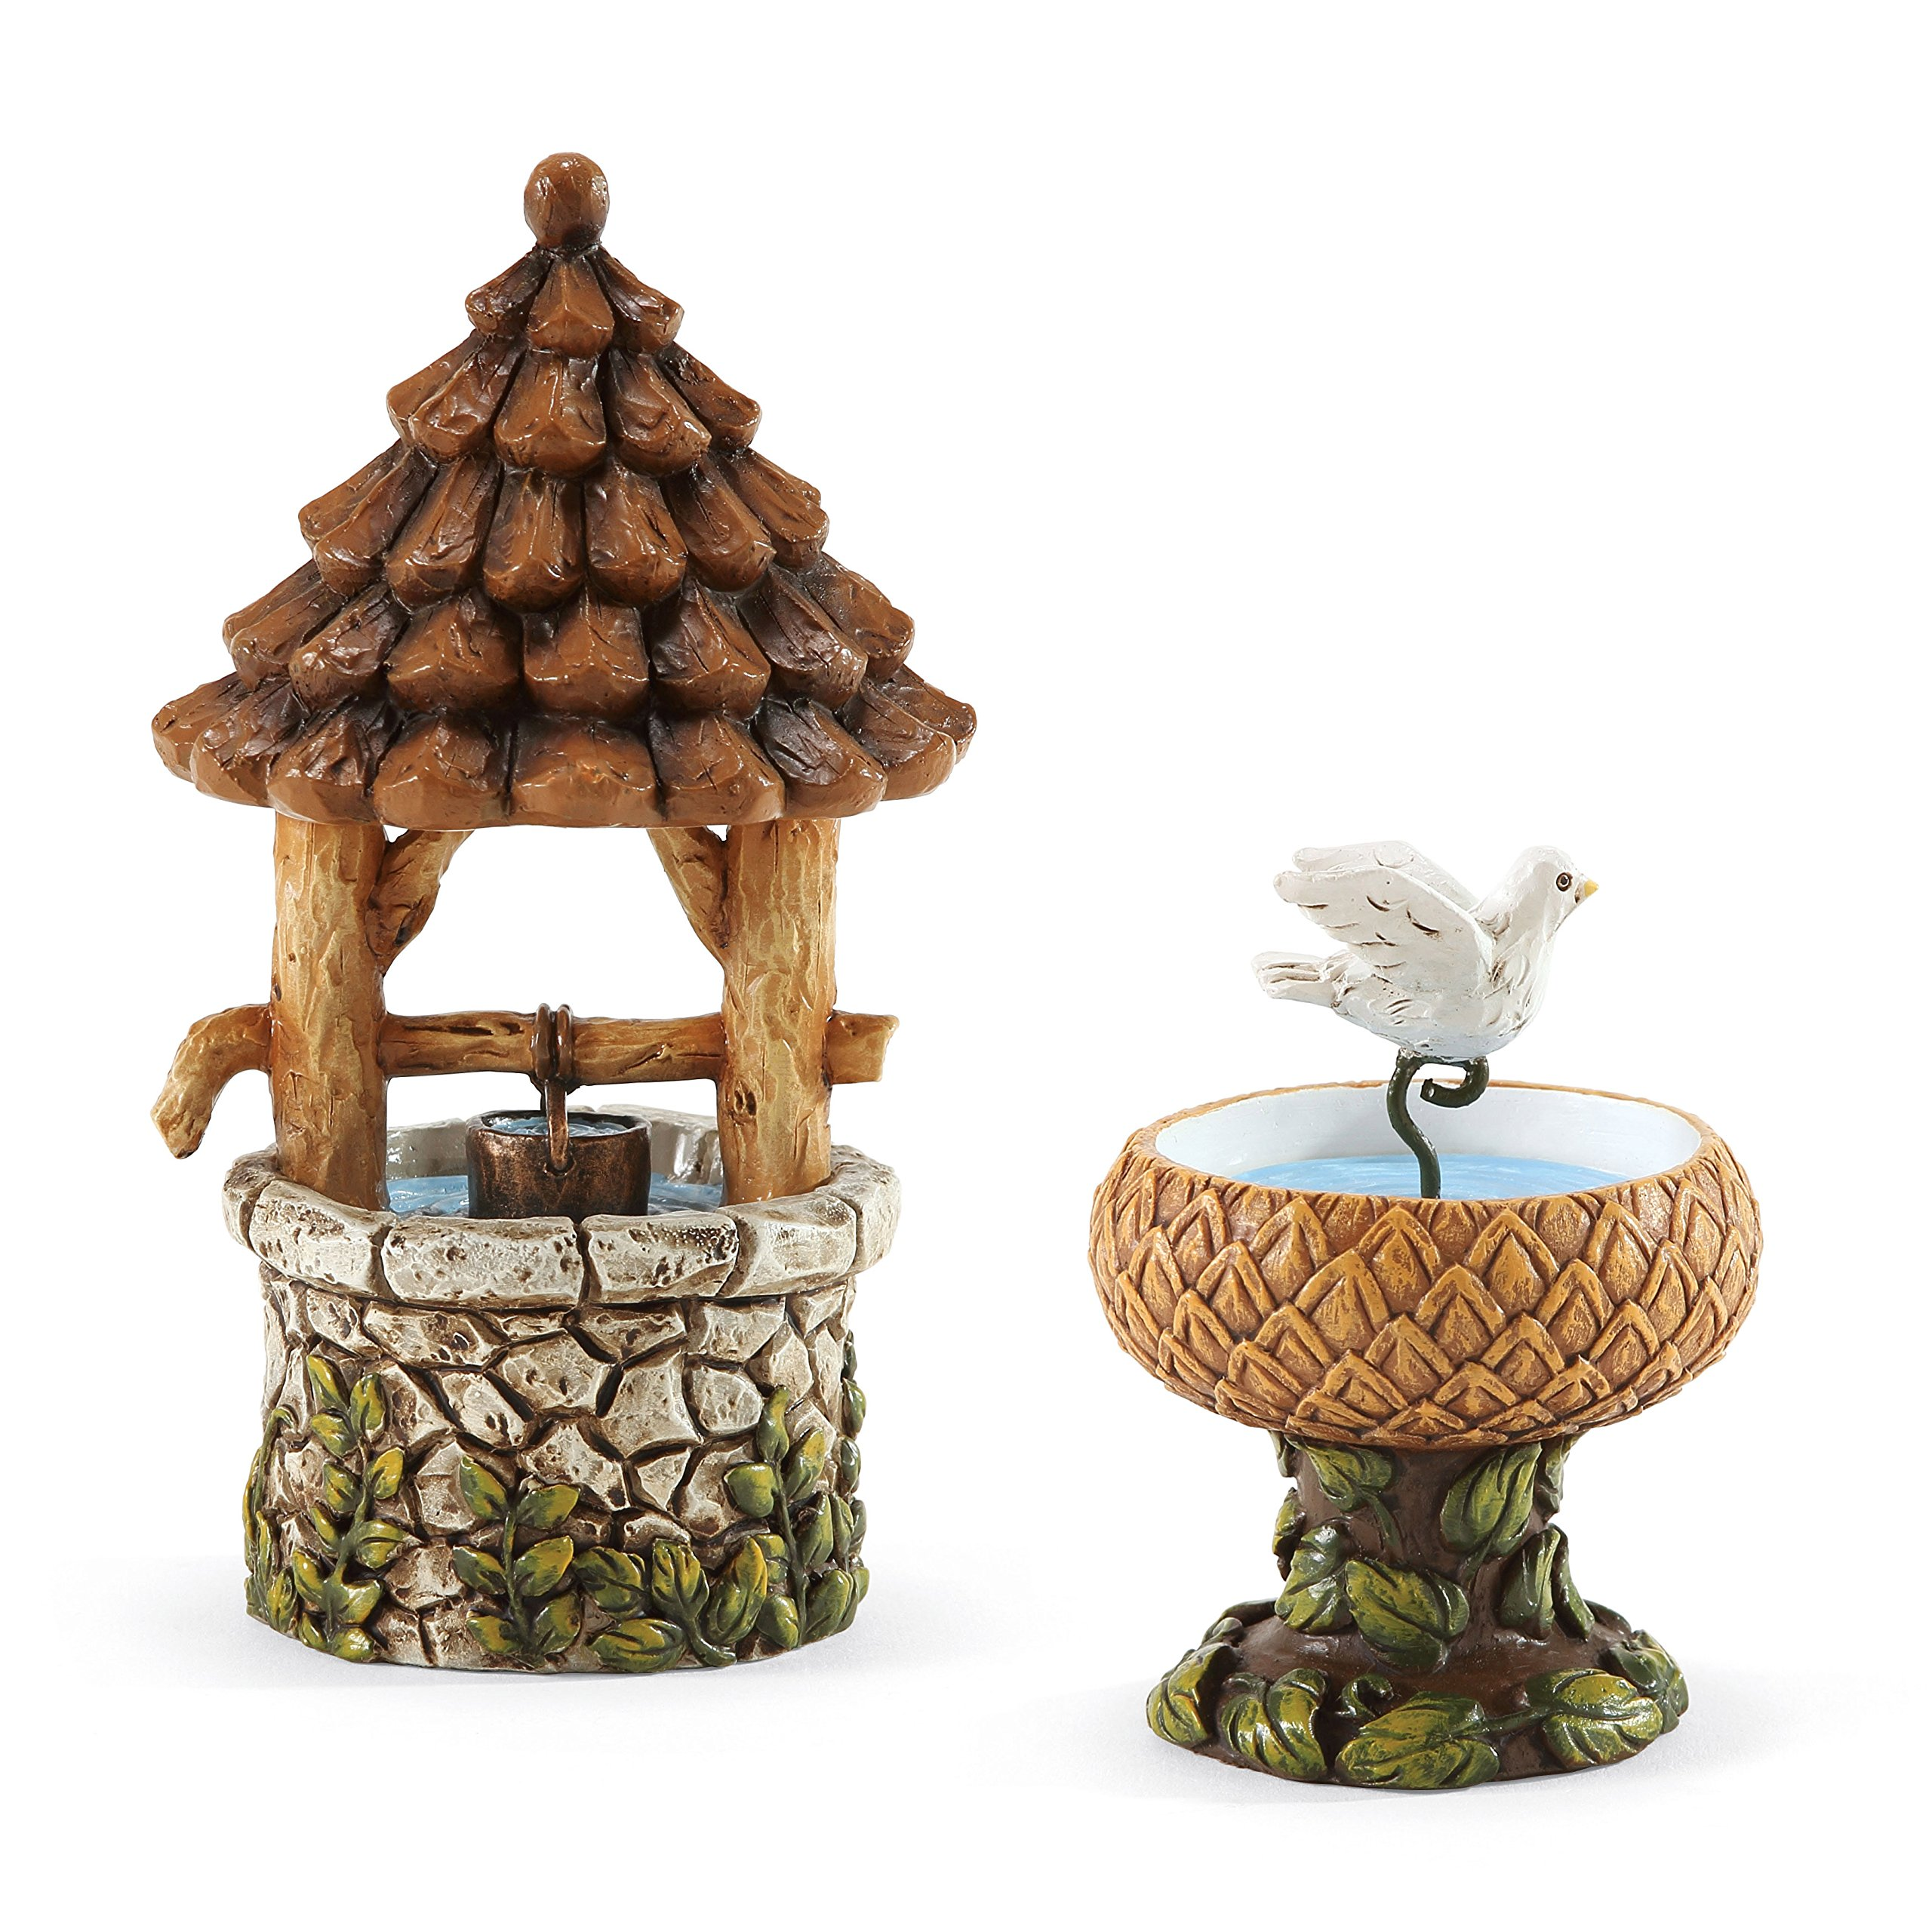 Department 56 Garden Guardians Birdbath and Well